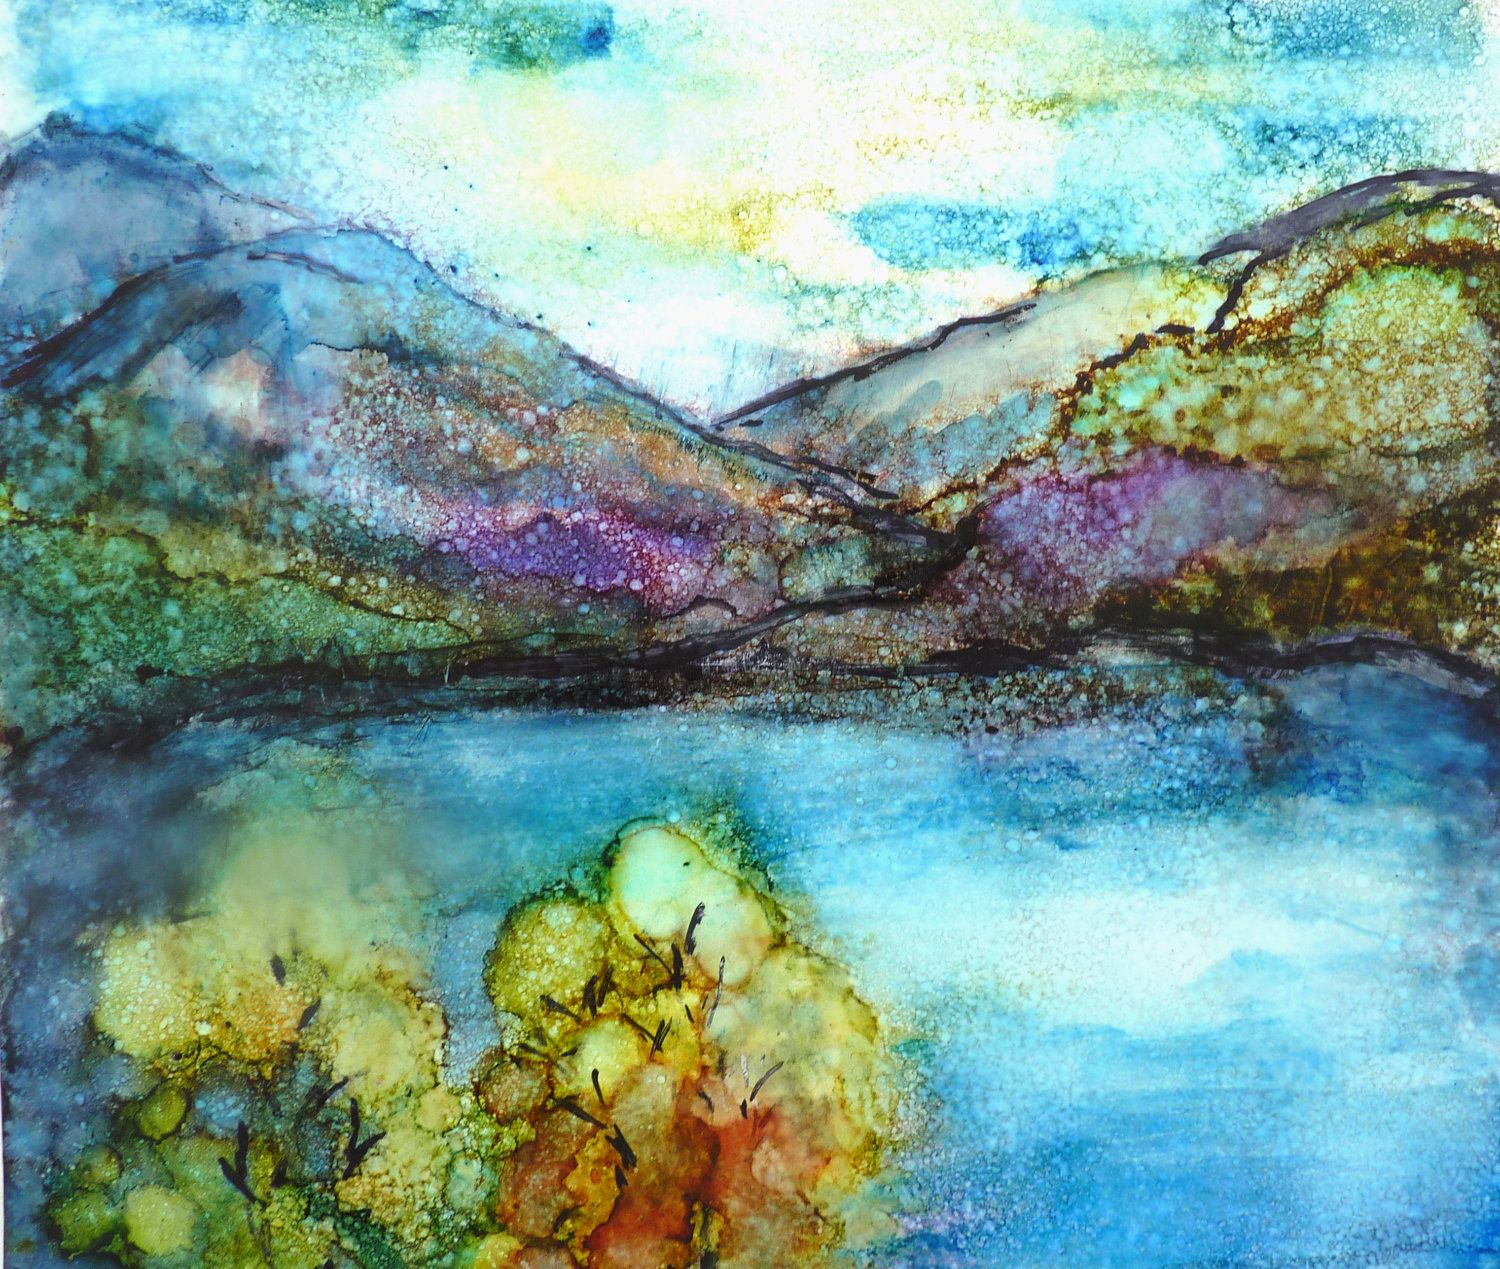 Alcohol+Ink+Landscape+Print+by+Maure+Bausch+by+twopoots+on+Etsy,+$12.50